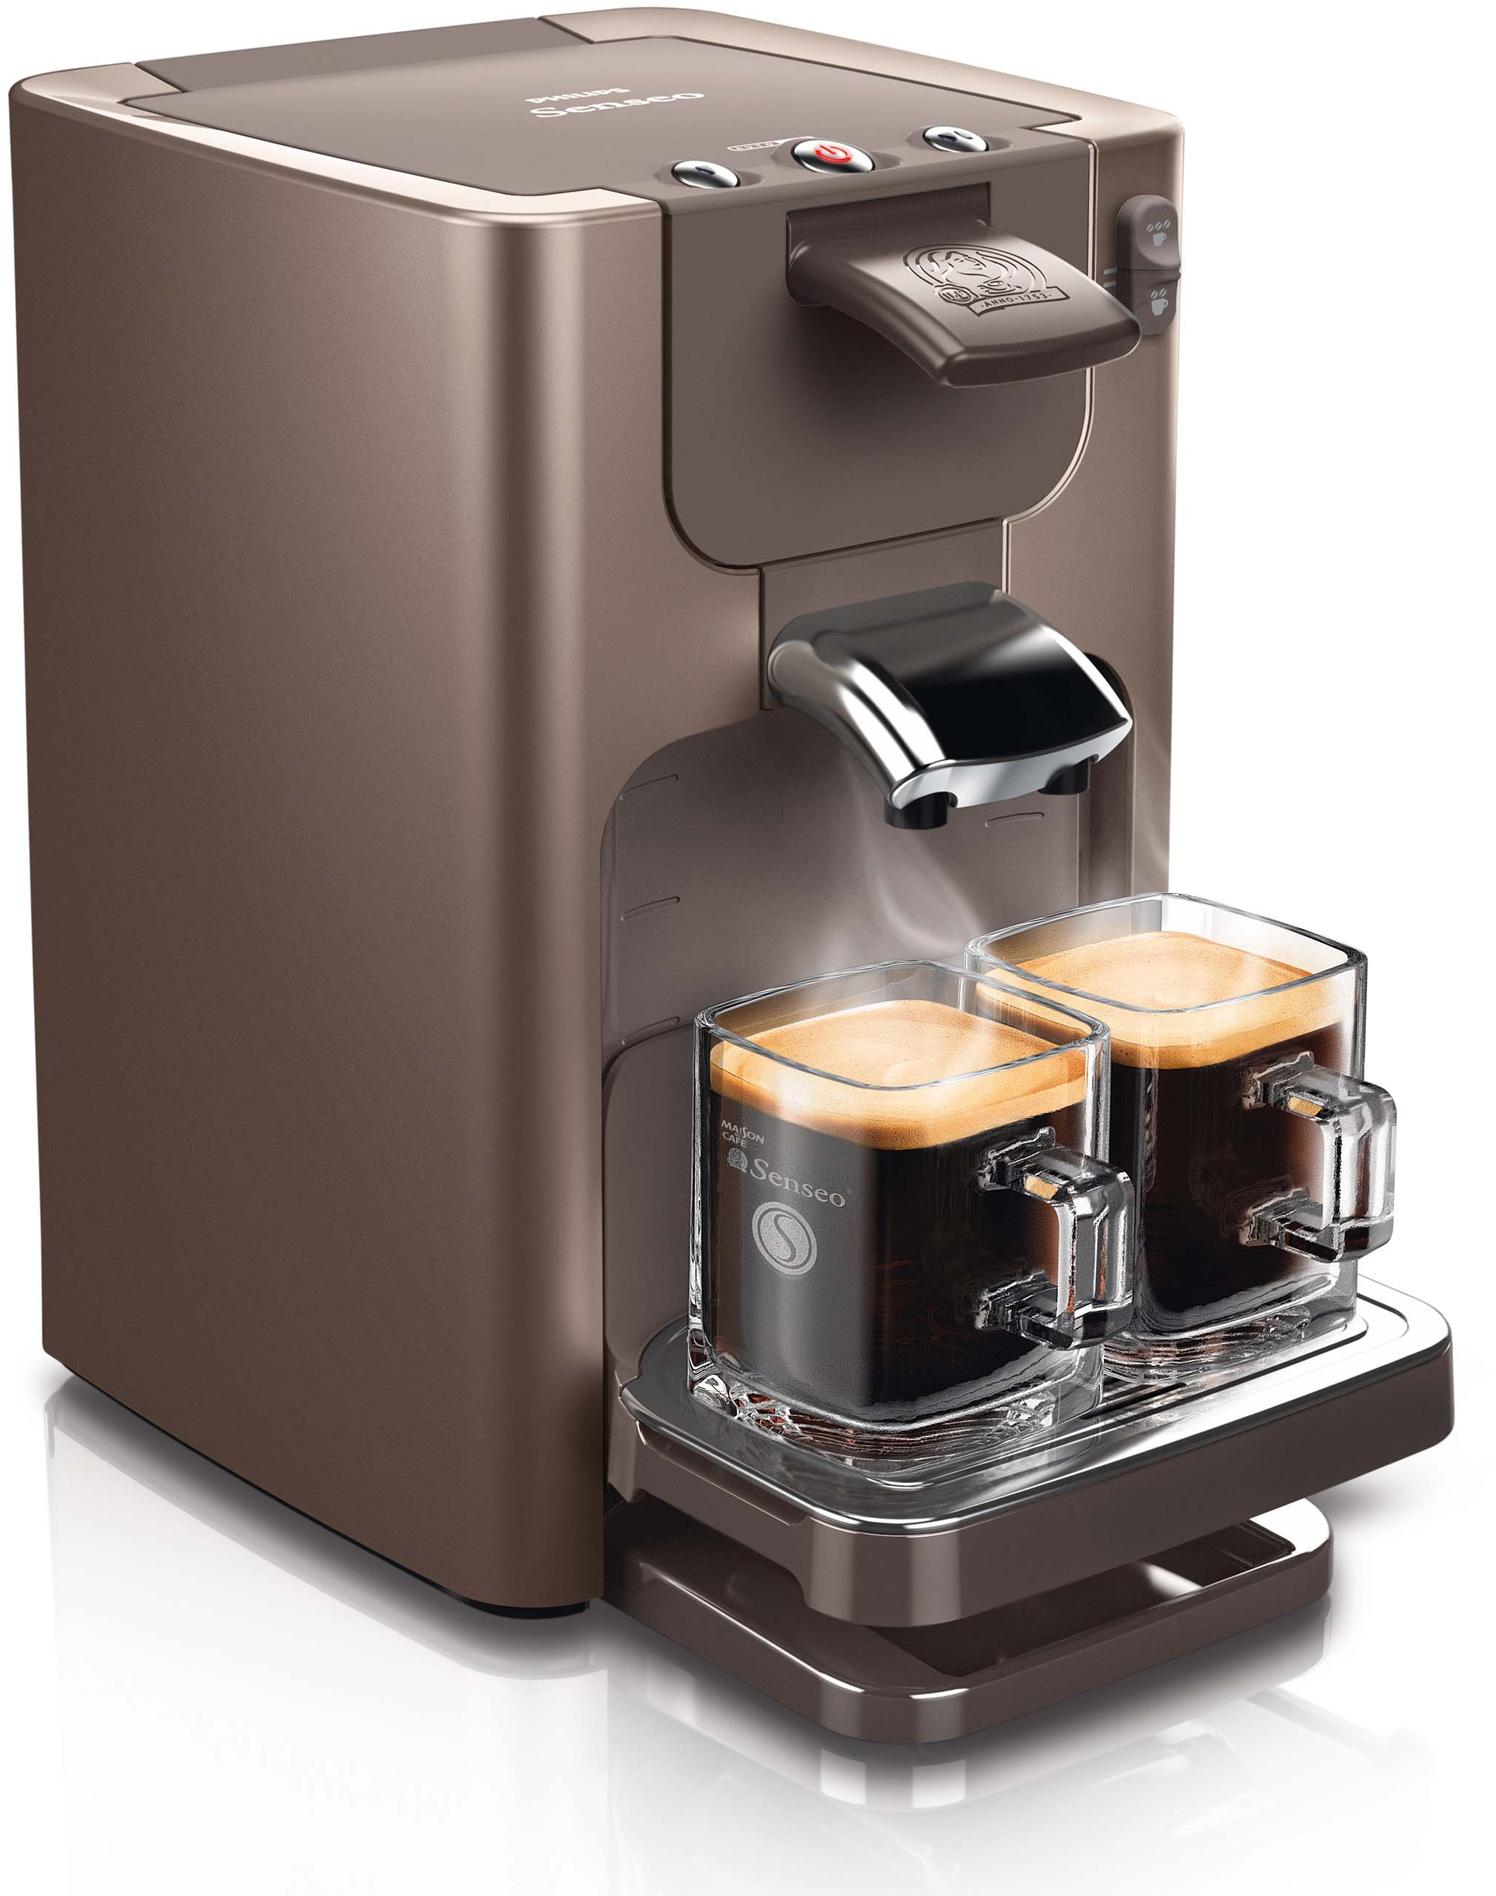 Things To Consider When Choosing A New Coffee Maker